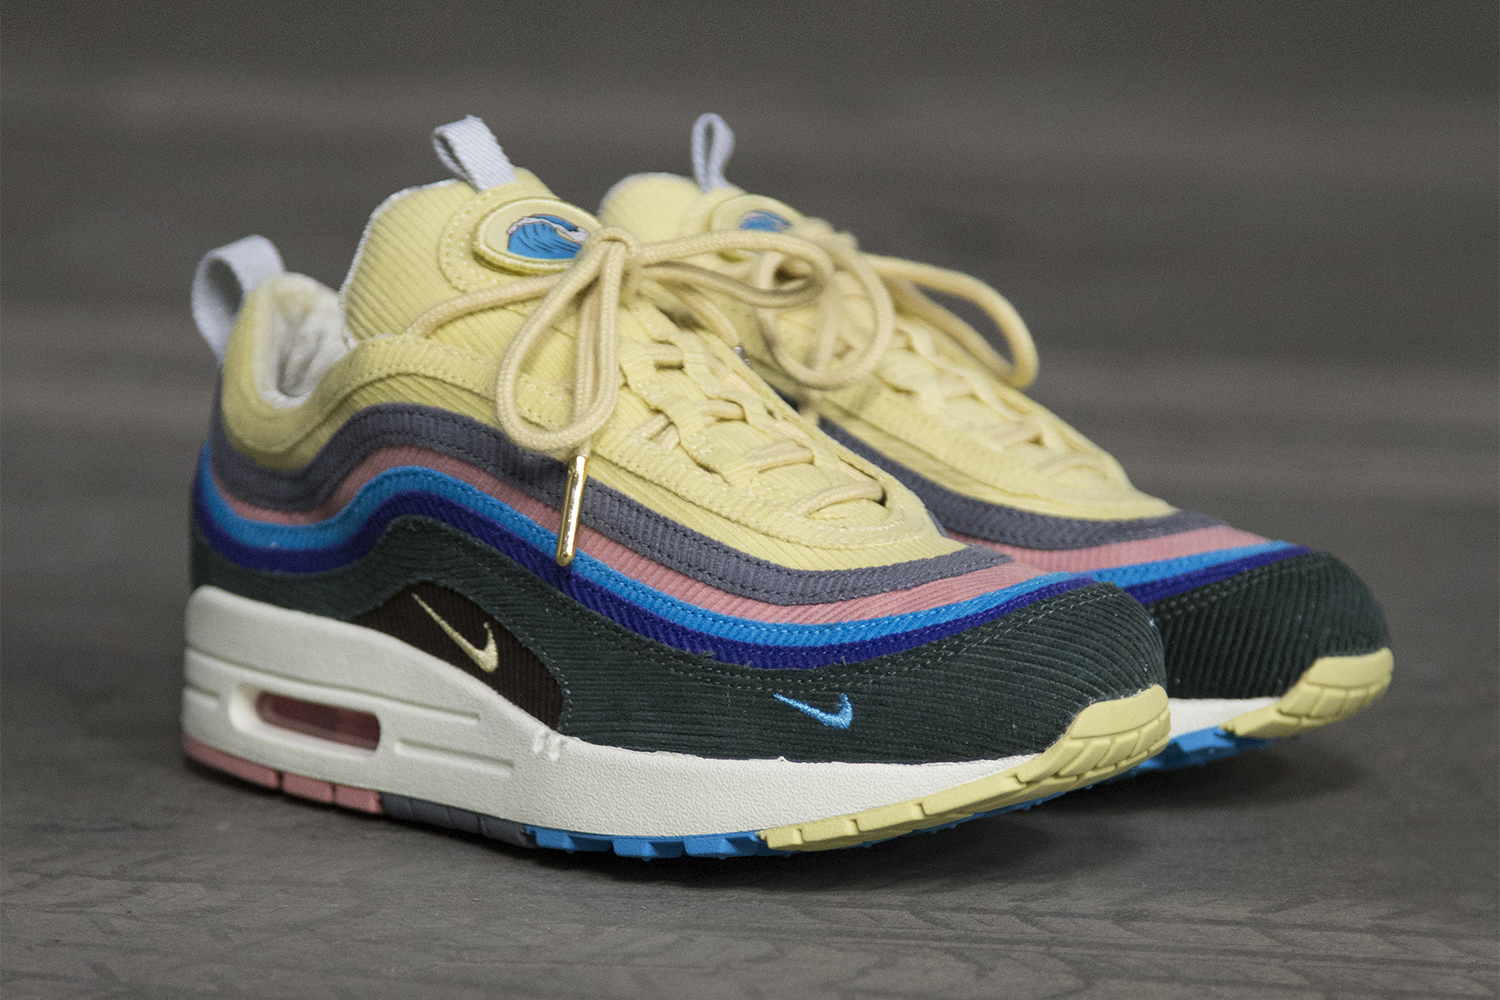 Nike x Sean Wotherspoon Air Max 97/1 VF